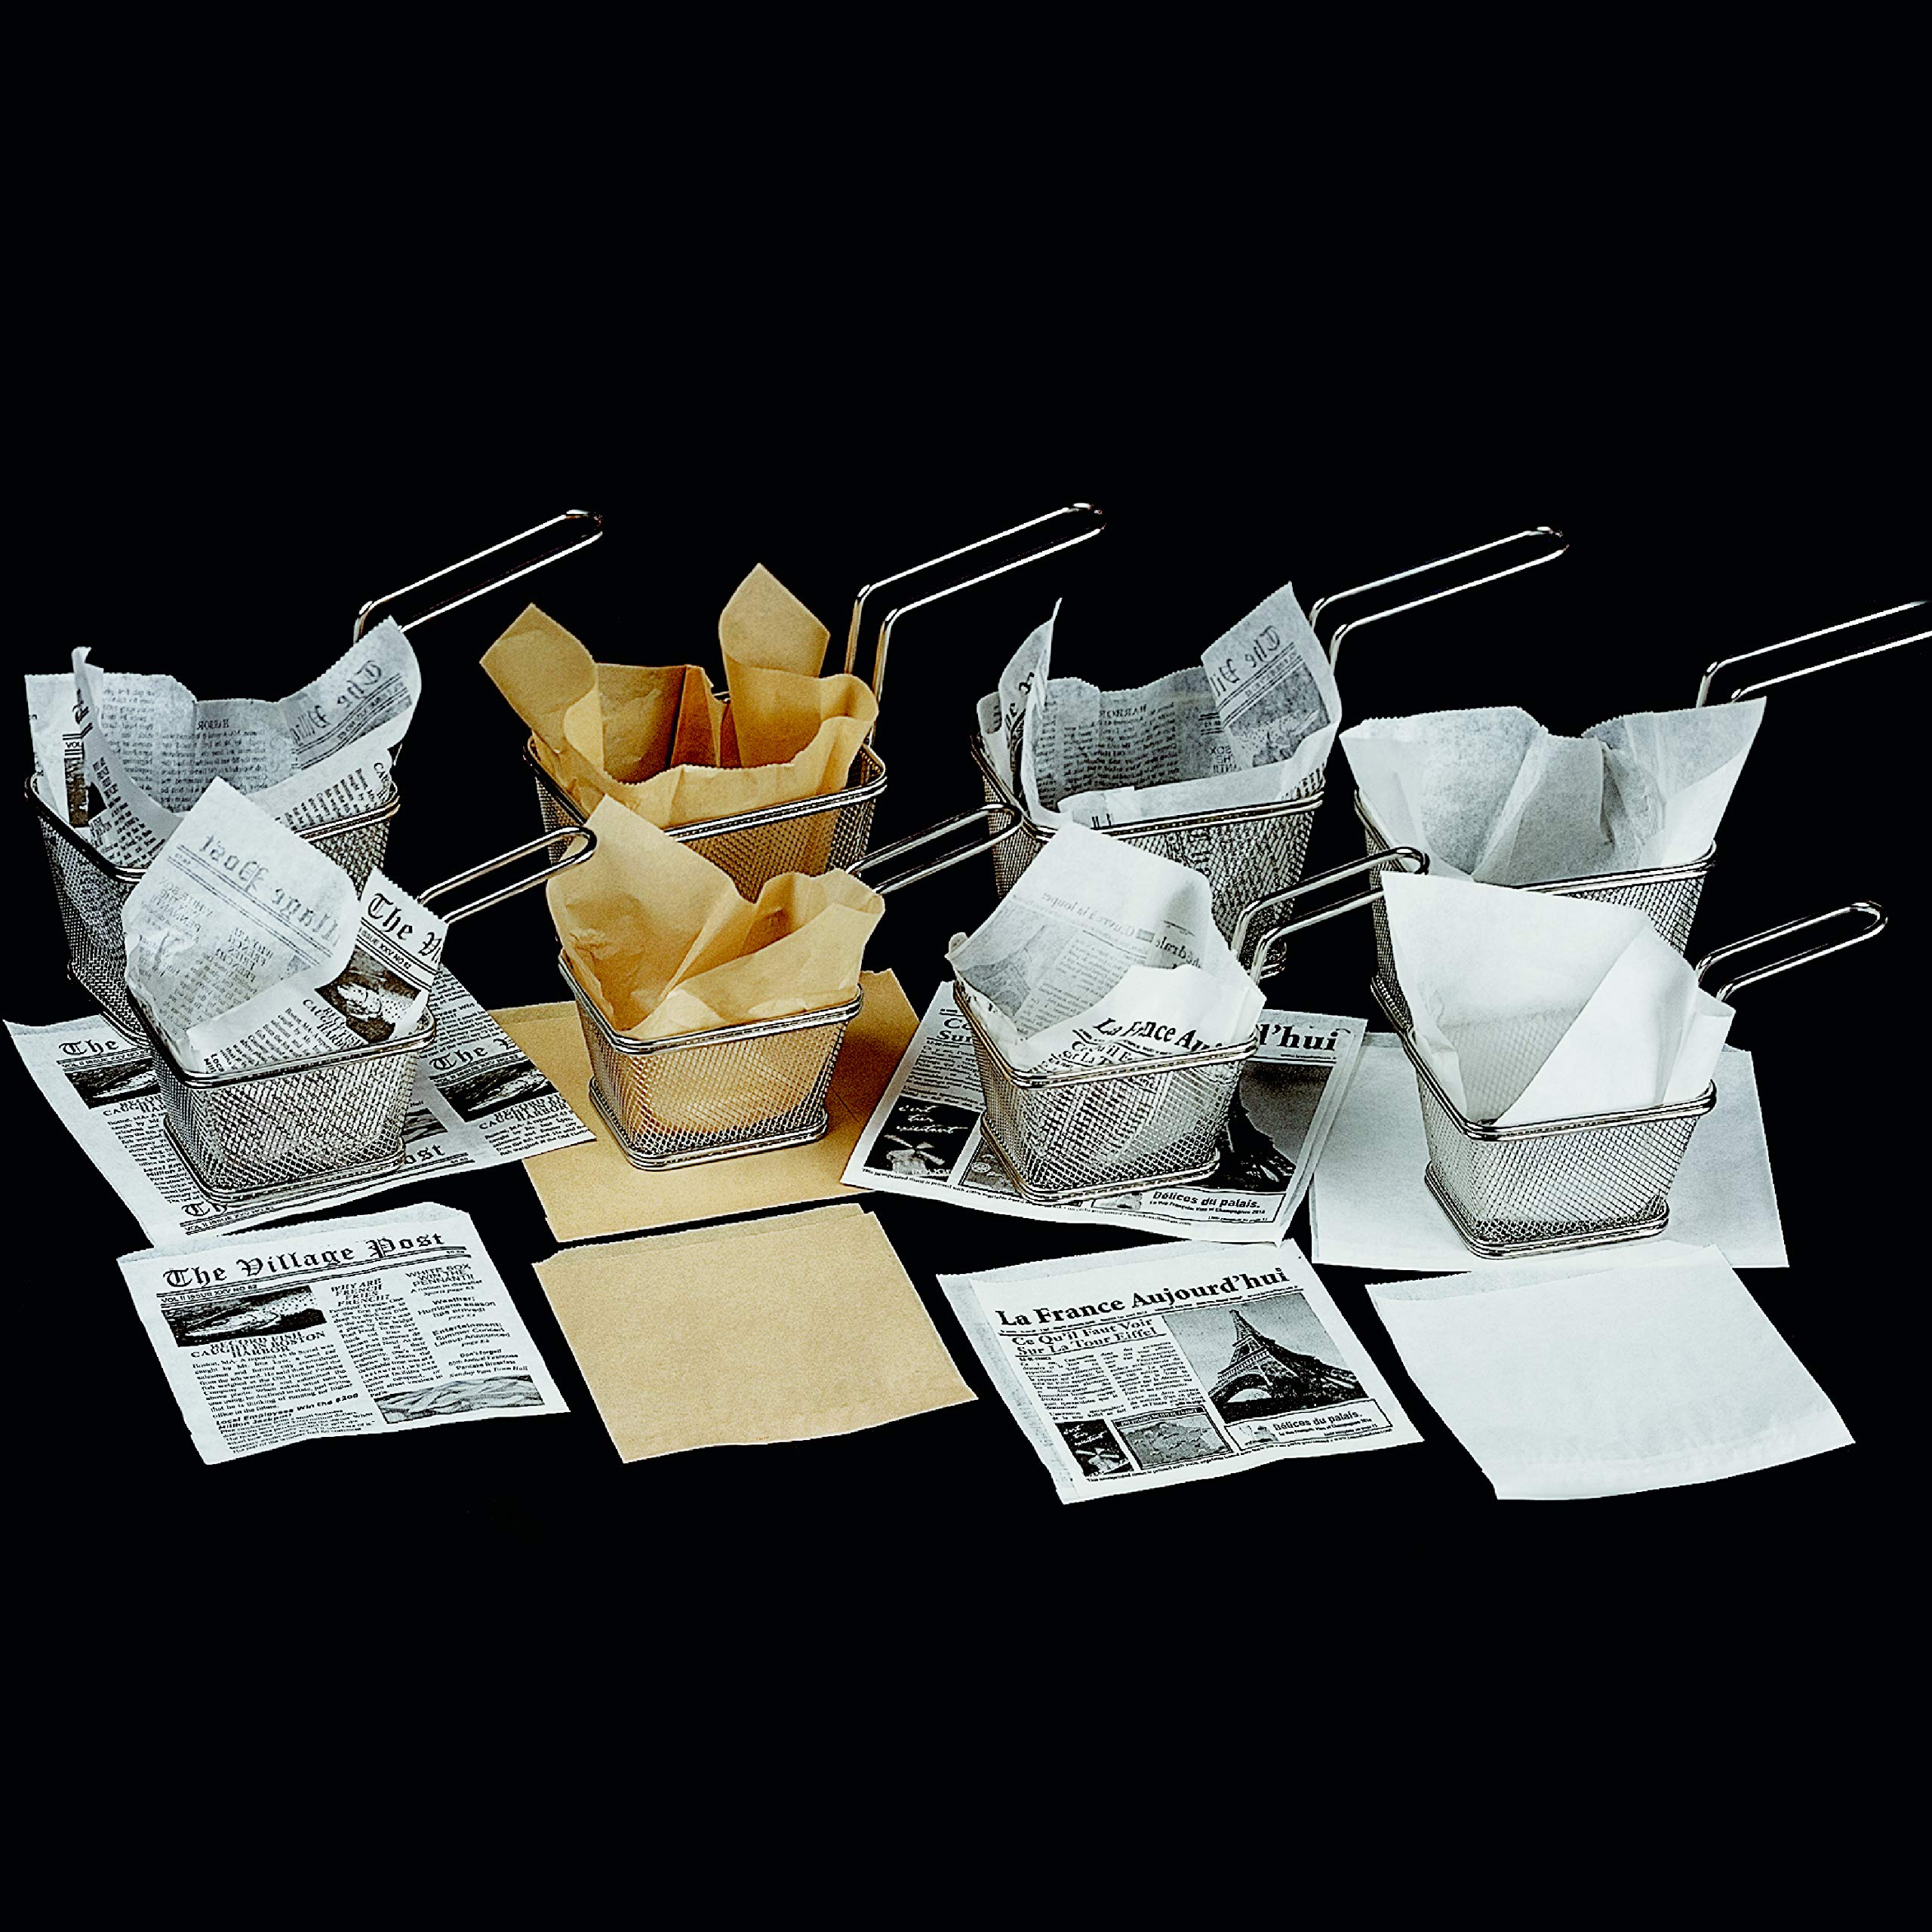 G.E.T. Enterprises White Newspaper Theme Cone Basket Liner / Deli Wrap Paper Paper Food-Safe Tissue Liners Collection 4-T3050 (Pack of 2000) by Unknown (Image #3)